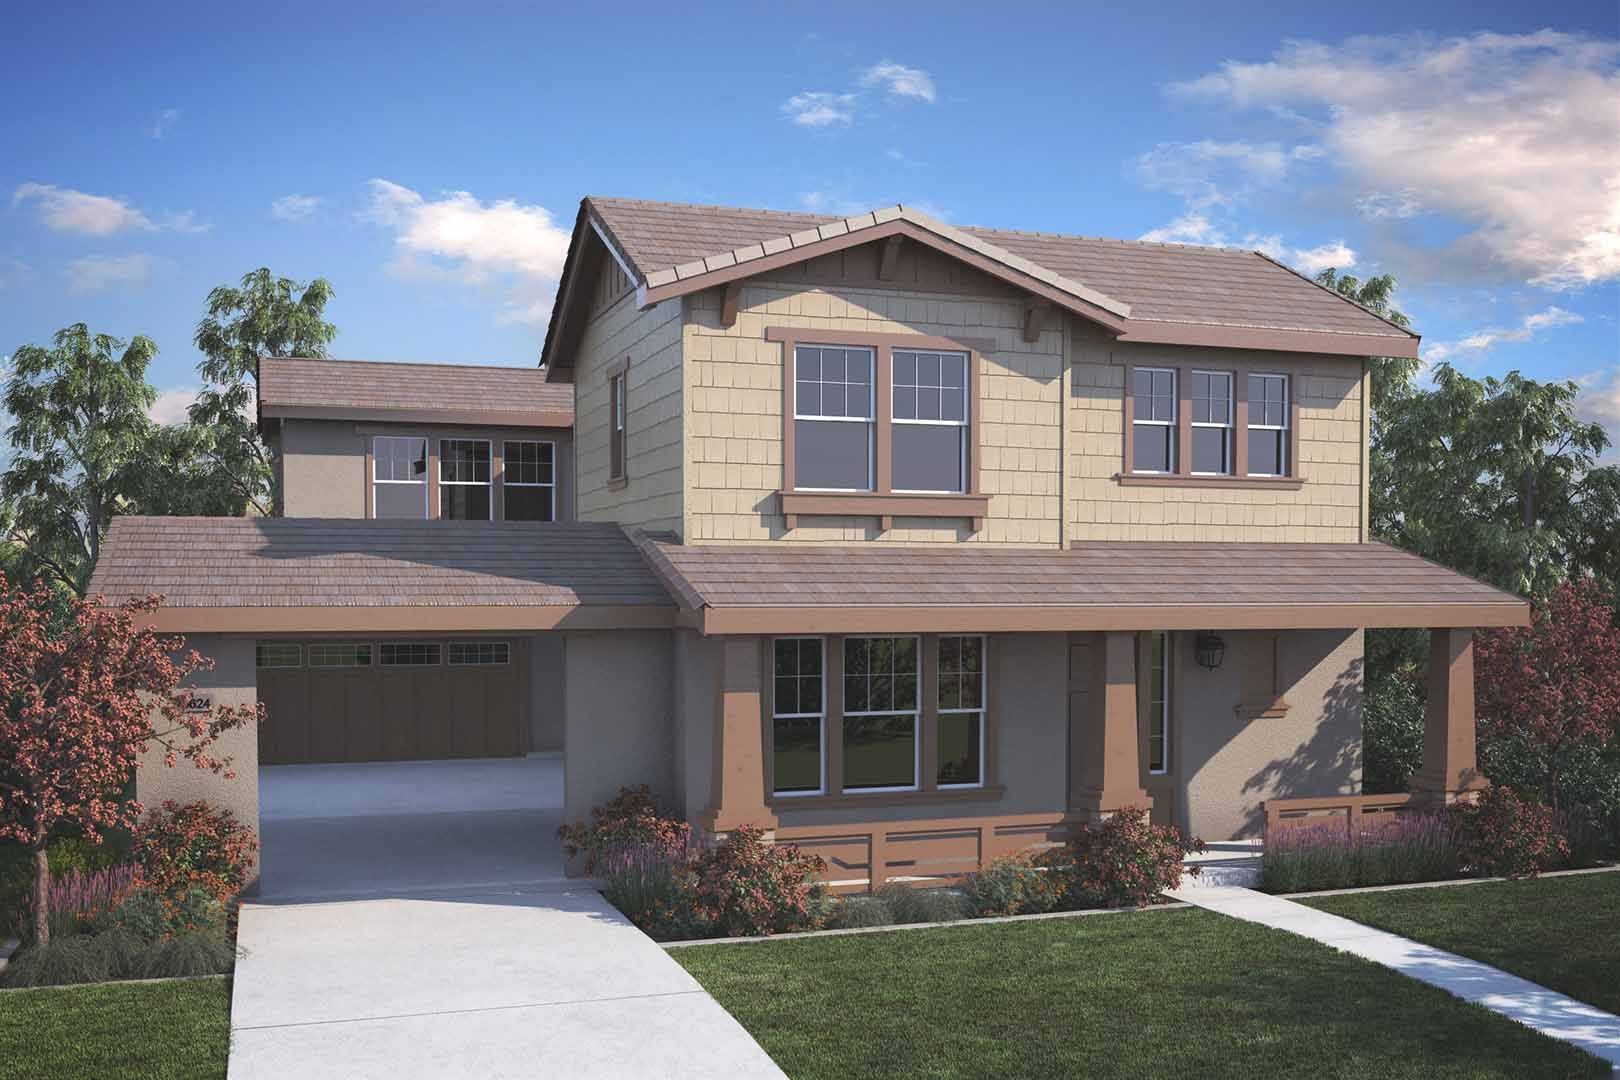 Sundance new homes in mountain house ca by tri pointe homes for Sundance house